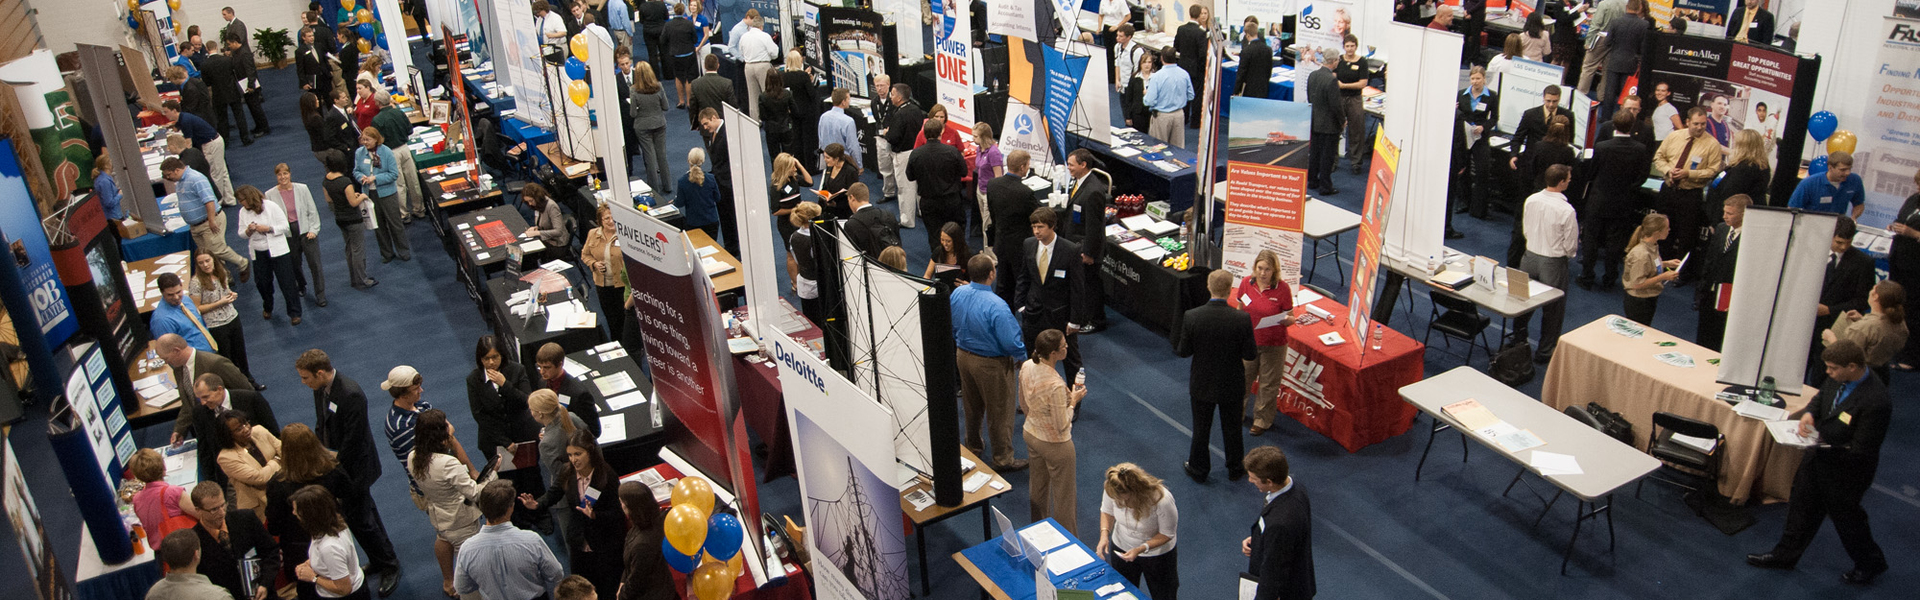 Students and employers at Career Conference